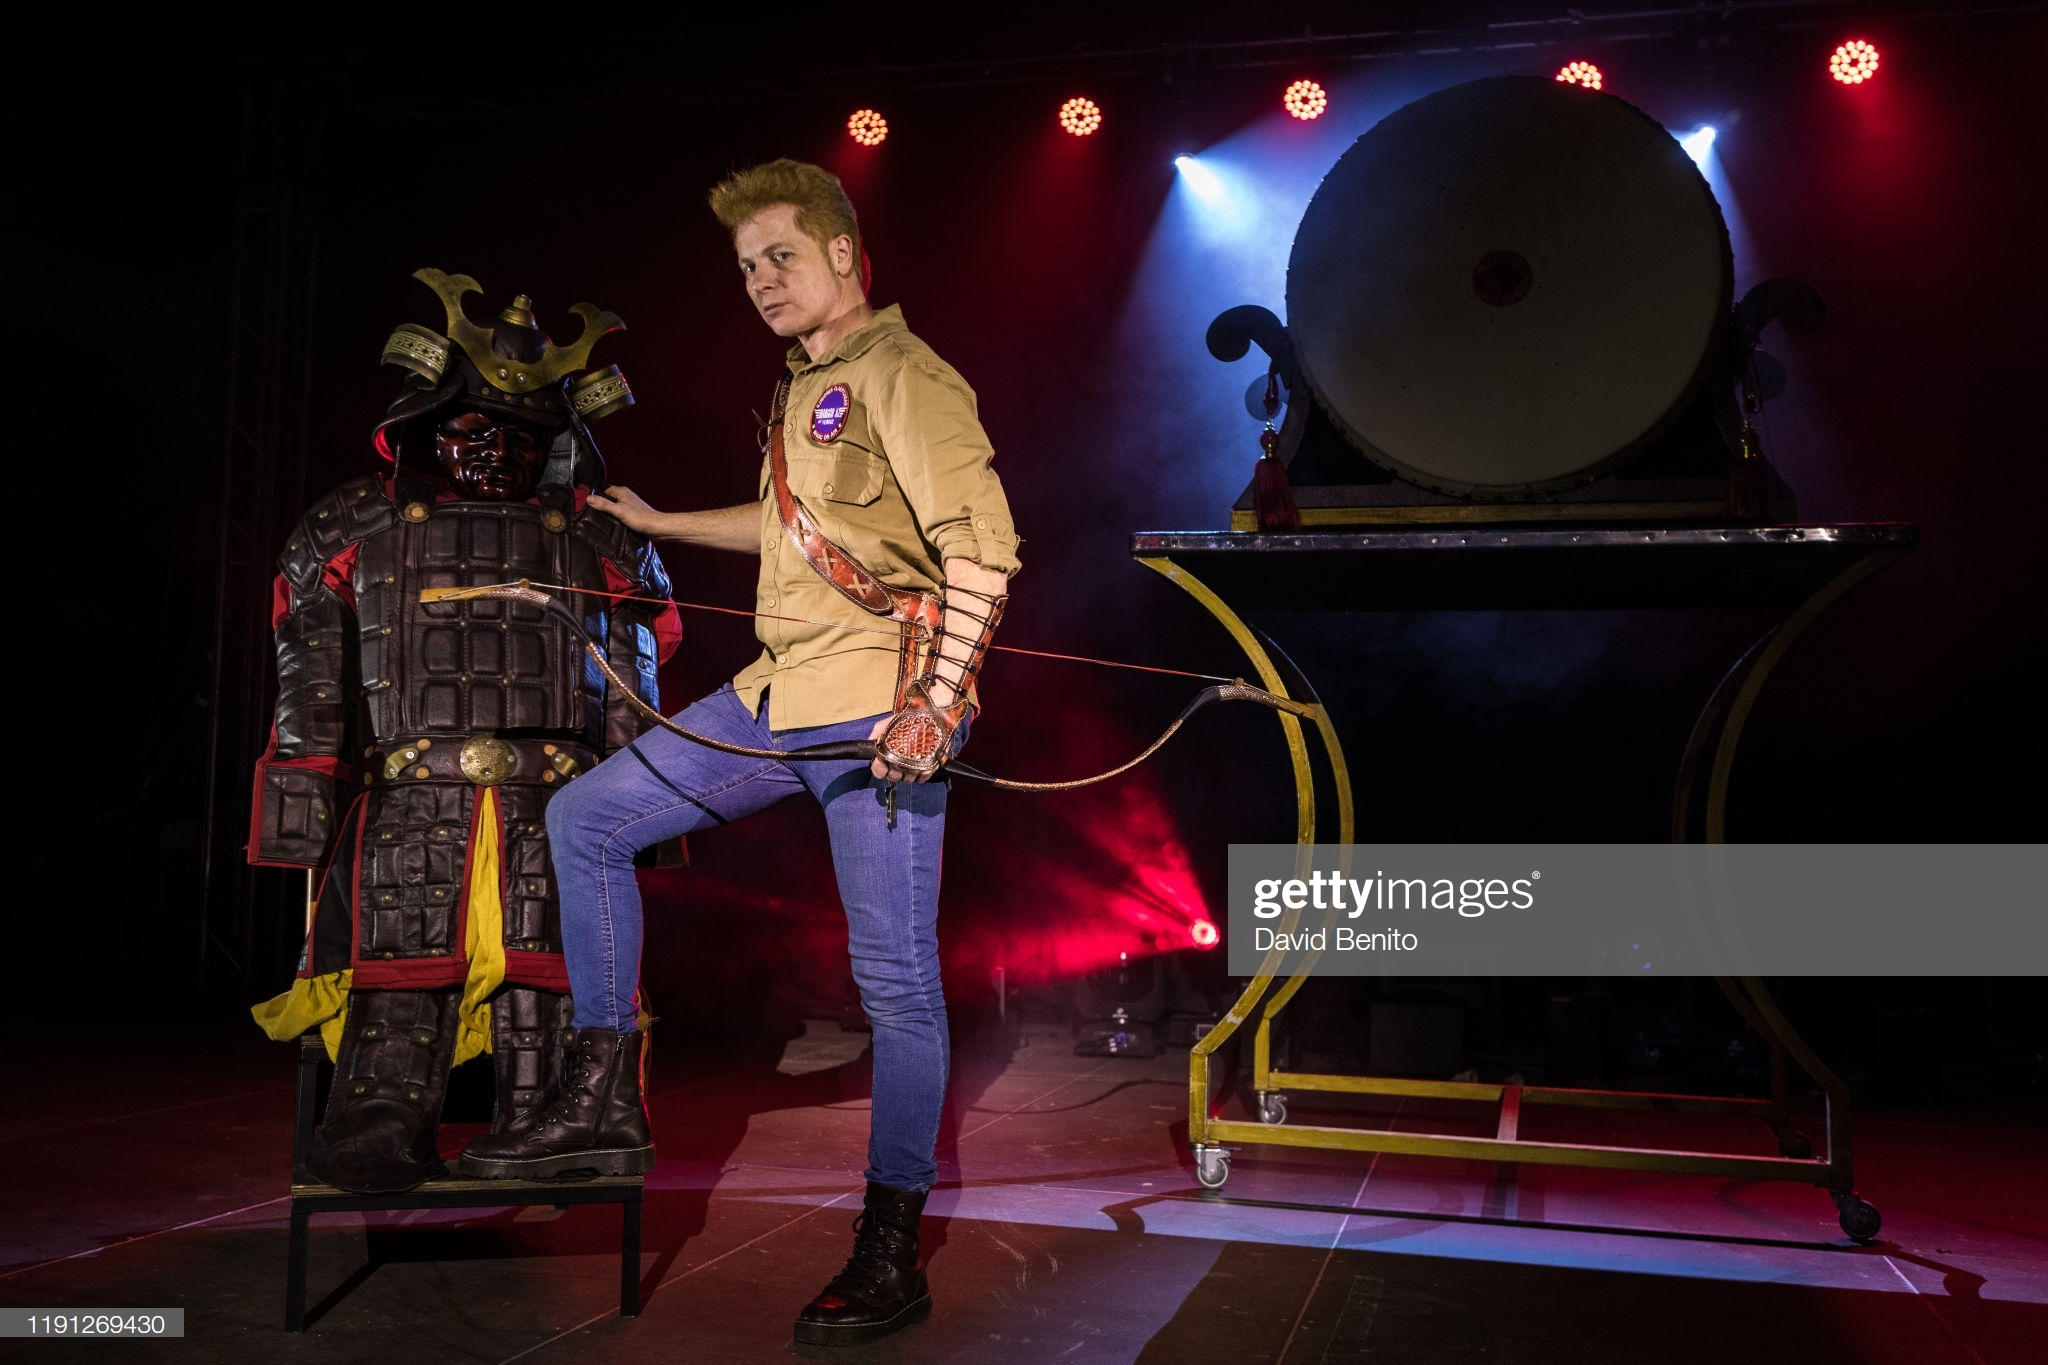 gettyimages-1191269430-2048x2048